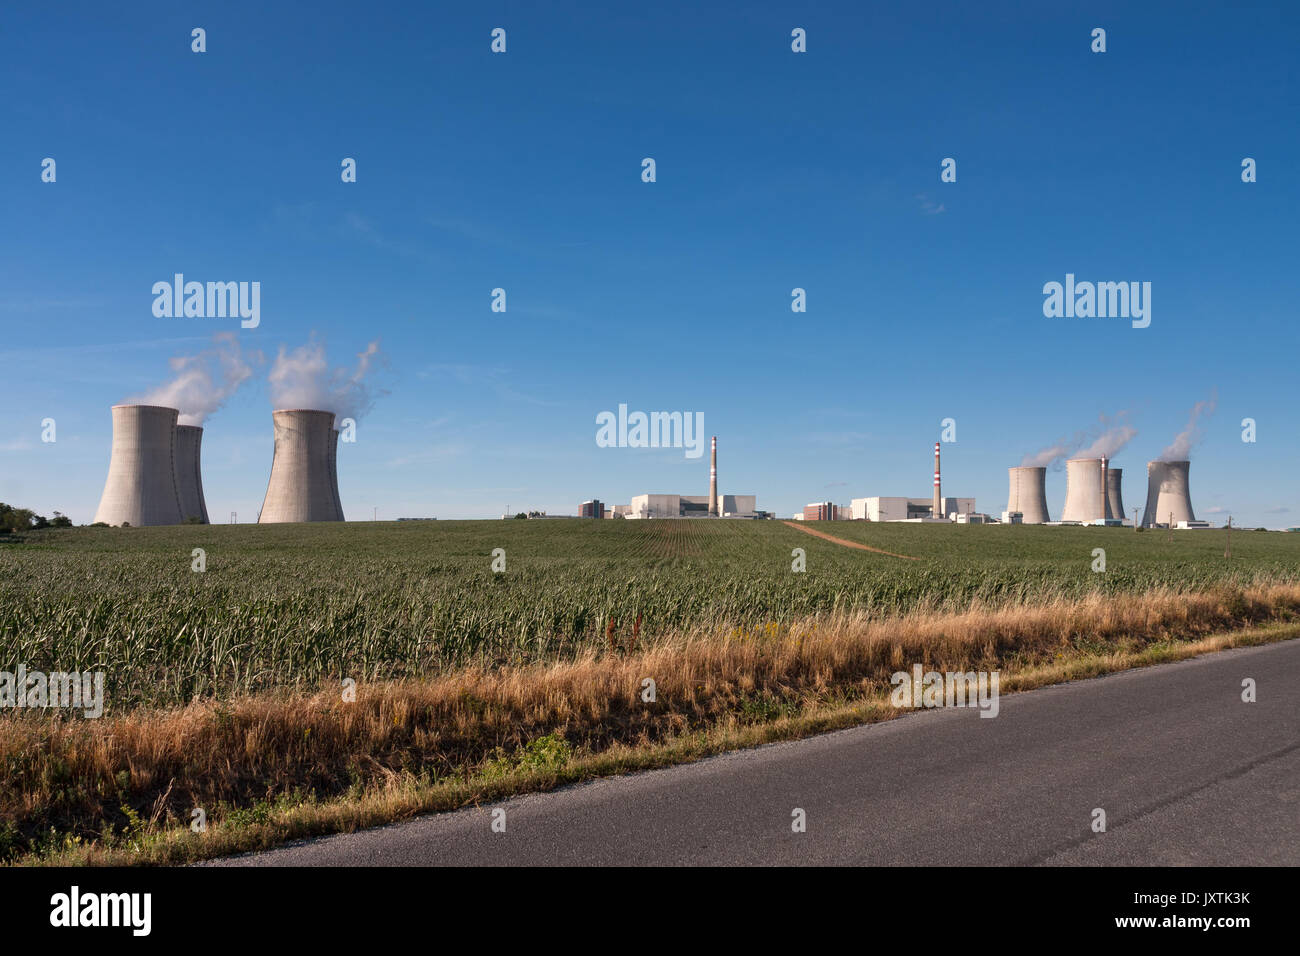 Aerial view of nuclear power station with cooling towers against blue sky, in the foreground green field. - Stock Image